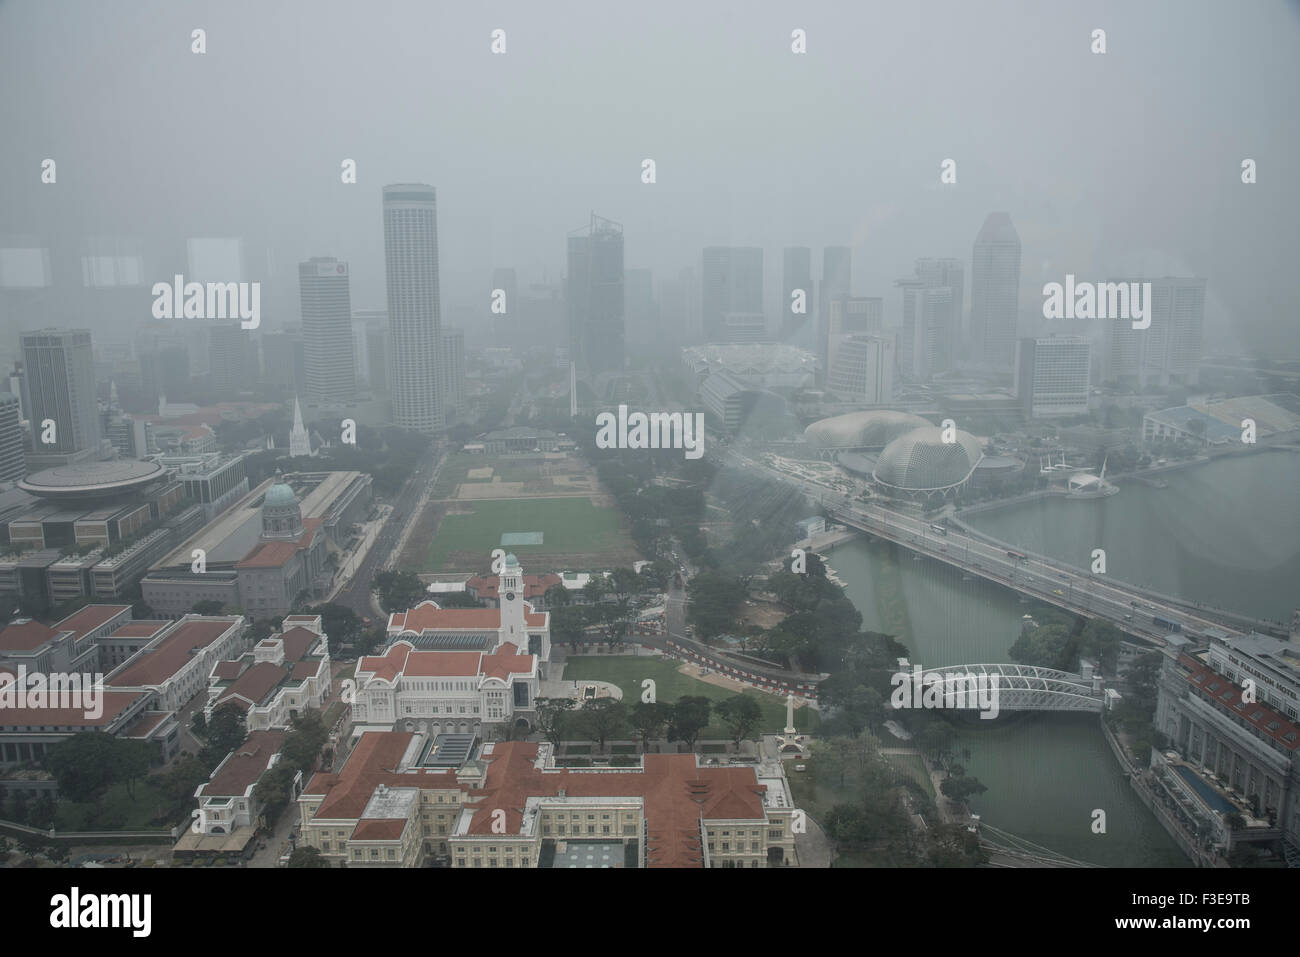 Hazardous haze pollution levels of more than 200 PSI in Singapore, due to destruction of rainforest in neighblouring - Stock Image